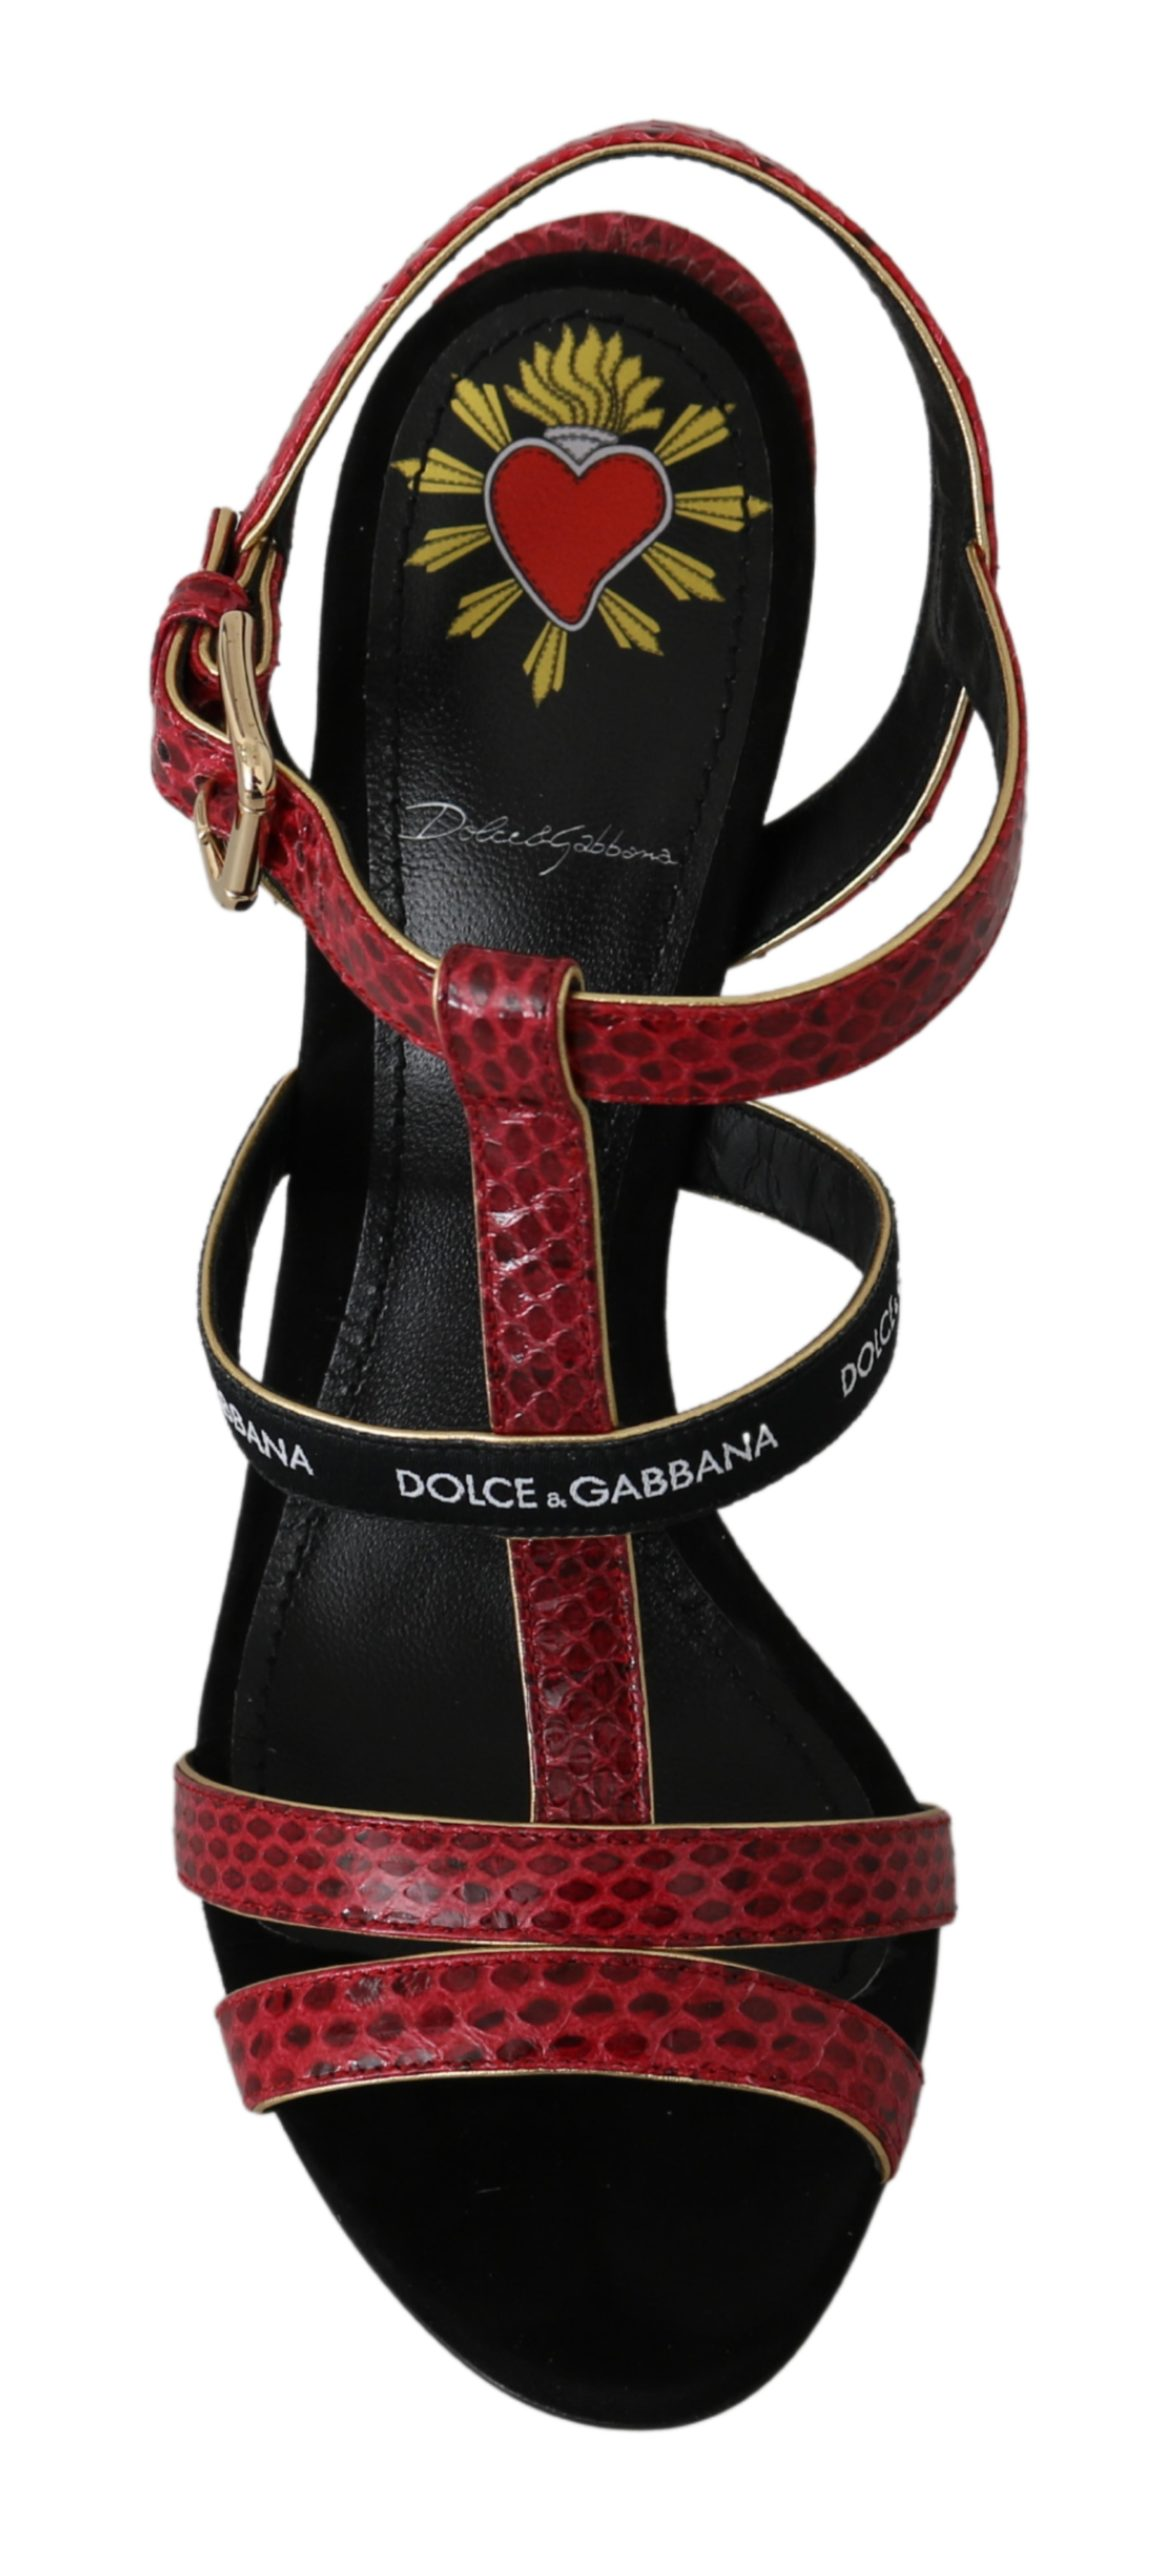 Dolce & Gabbana Women's Ayers Leather Sandals Red - EU35/US4.5